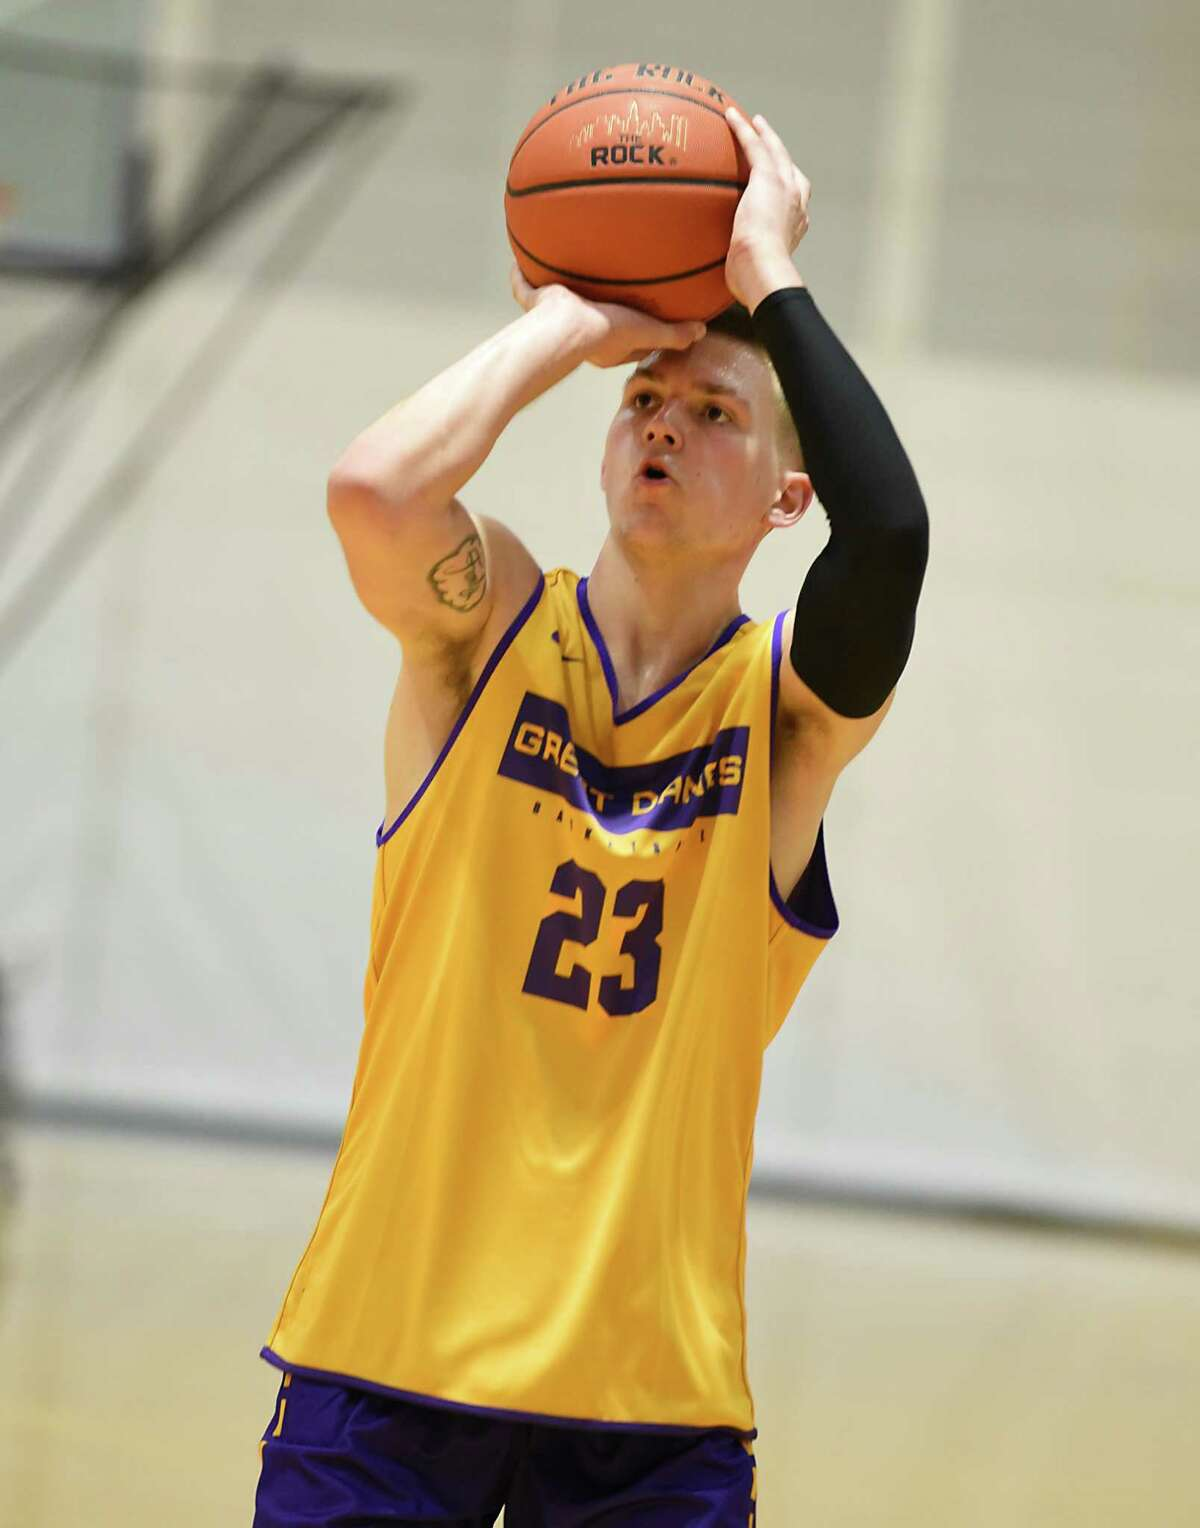 Sam Shafer takes a jump shot during the first official practice for the University at Albany basketball team on Friday, Oct. 4, 2019 in Albany, N.Y. (Lori Van Buren/Times Union)